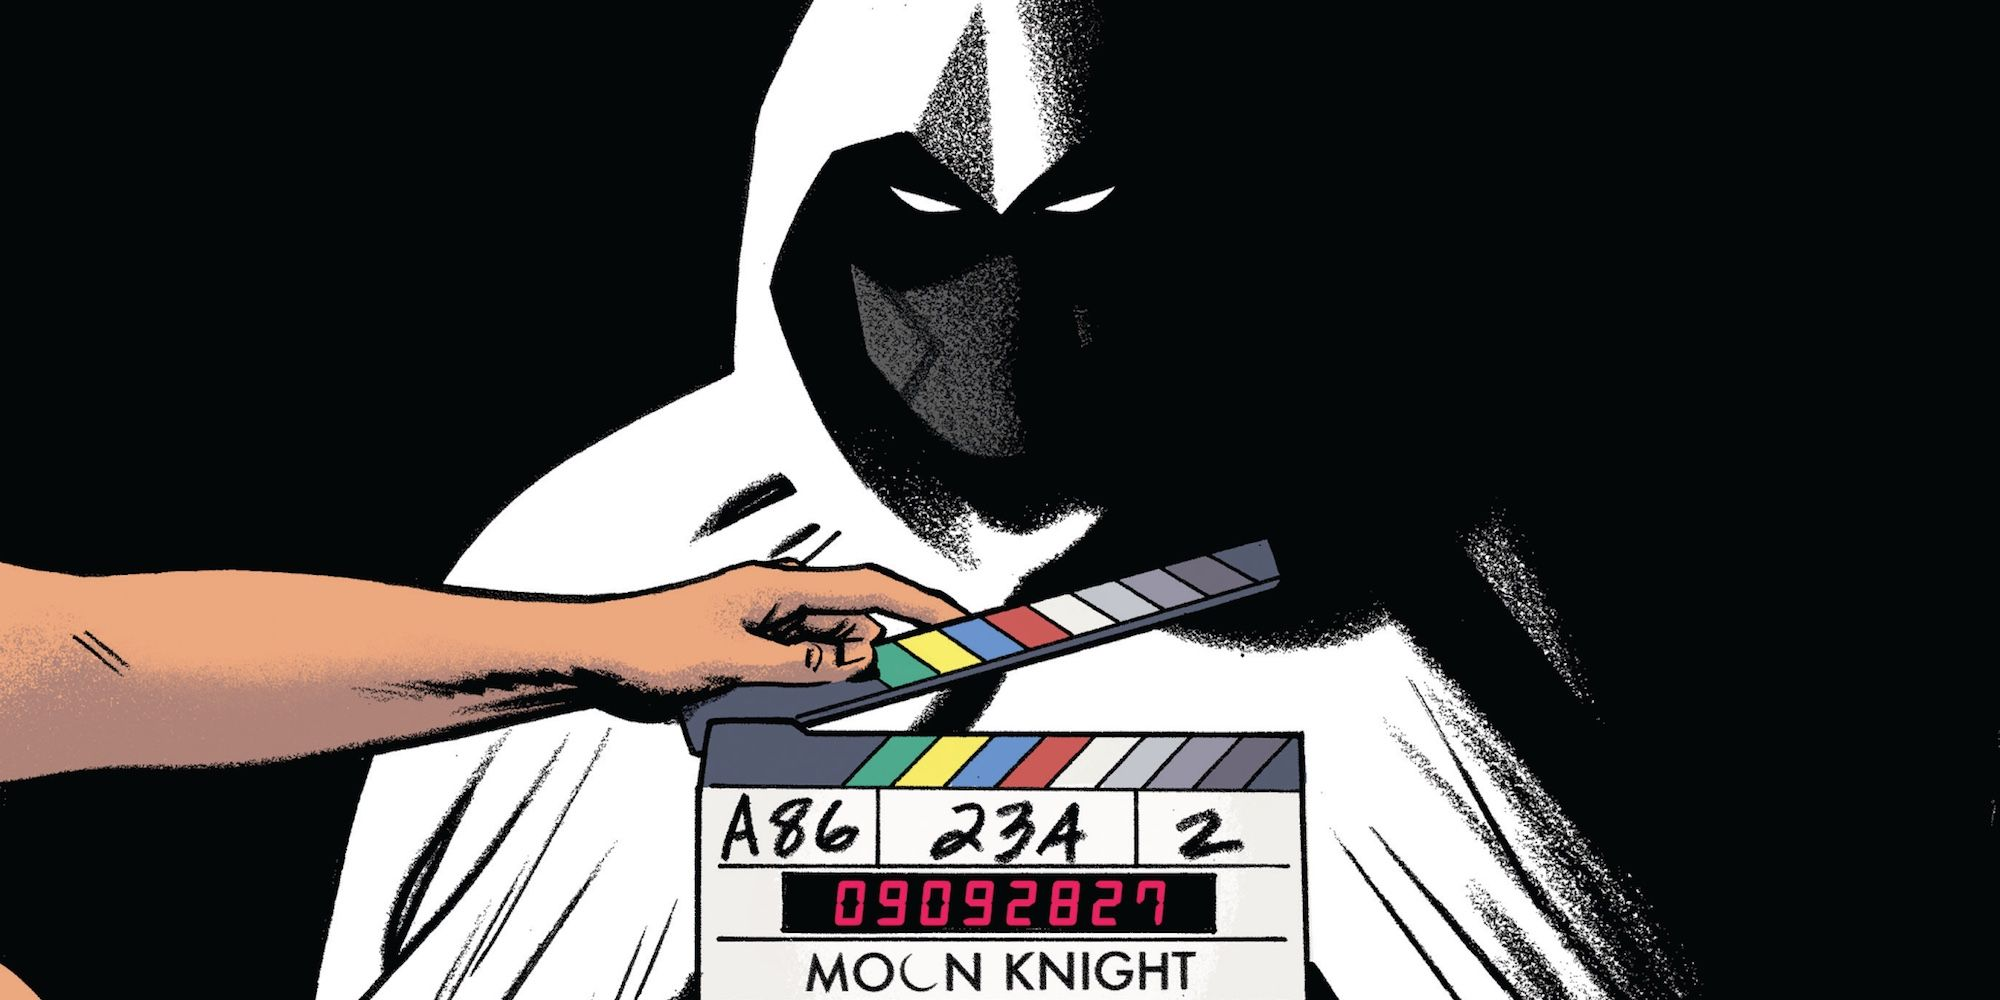 Moon Knight Casting: Marvel Looking For Jewish-Israeli Zac Efron-Type